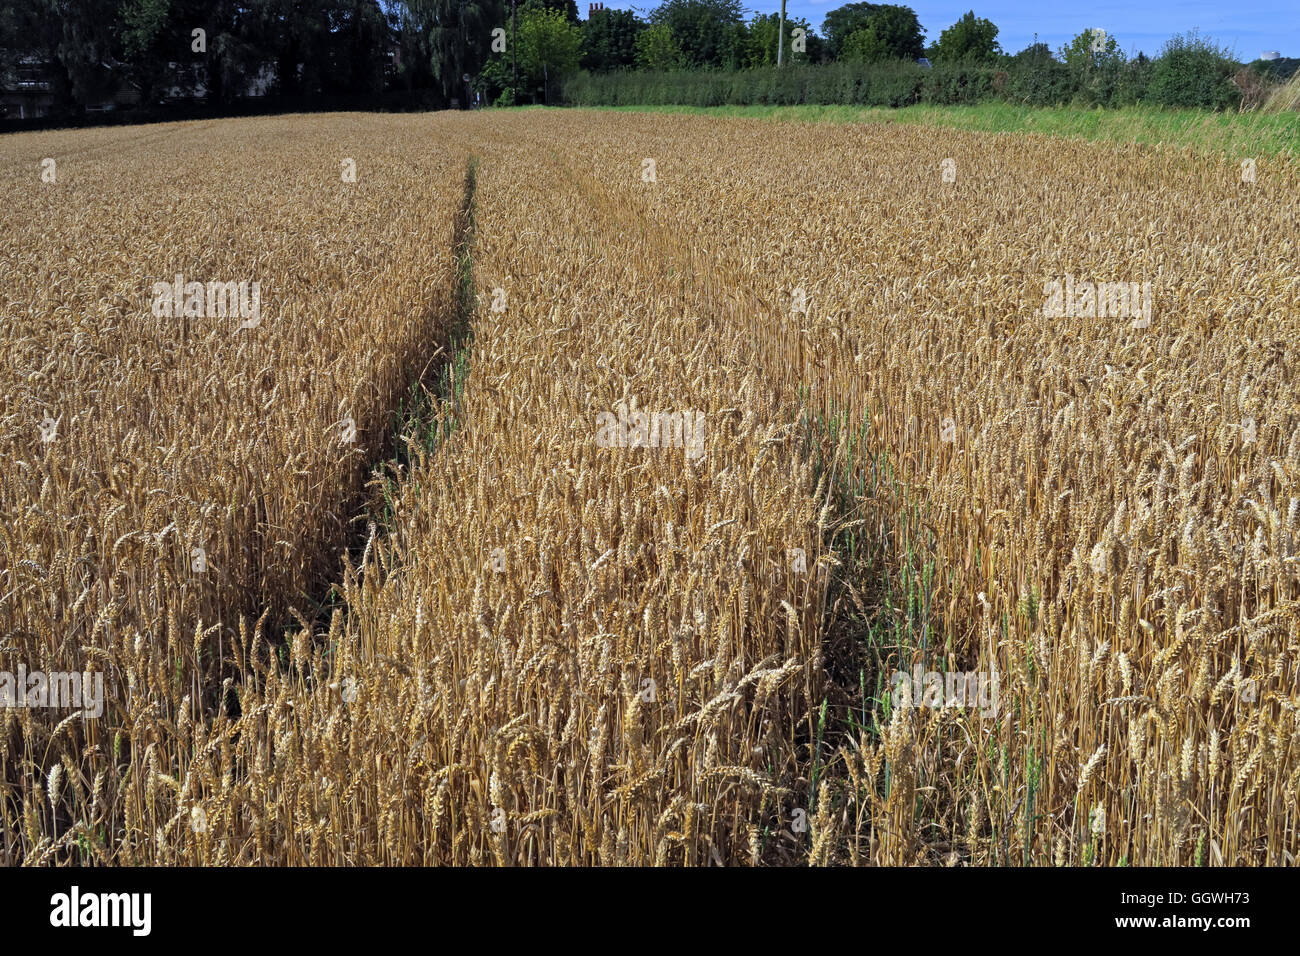 Wide shot of a Field of barley, ready for harvest, Preston on the Hill, Halton, Cheshire, North West England - Stock Image